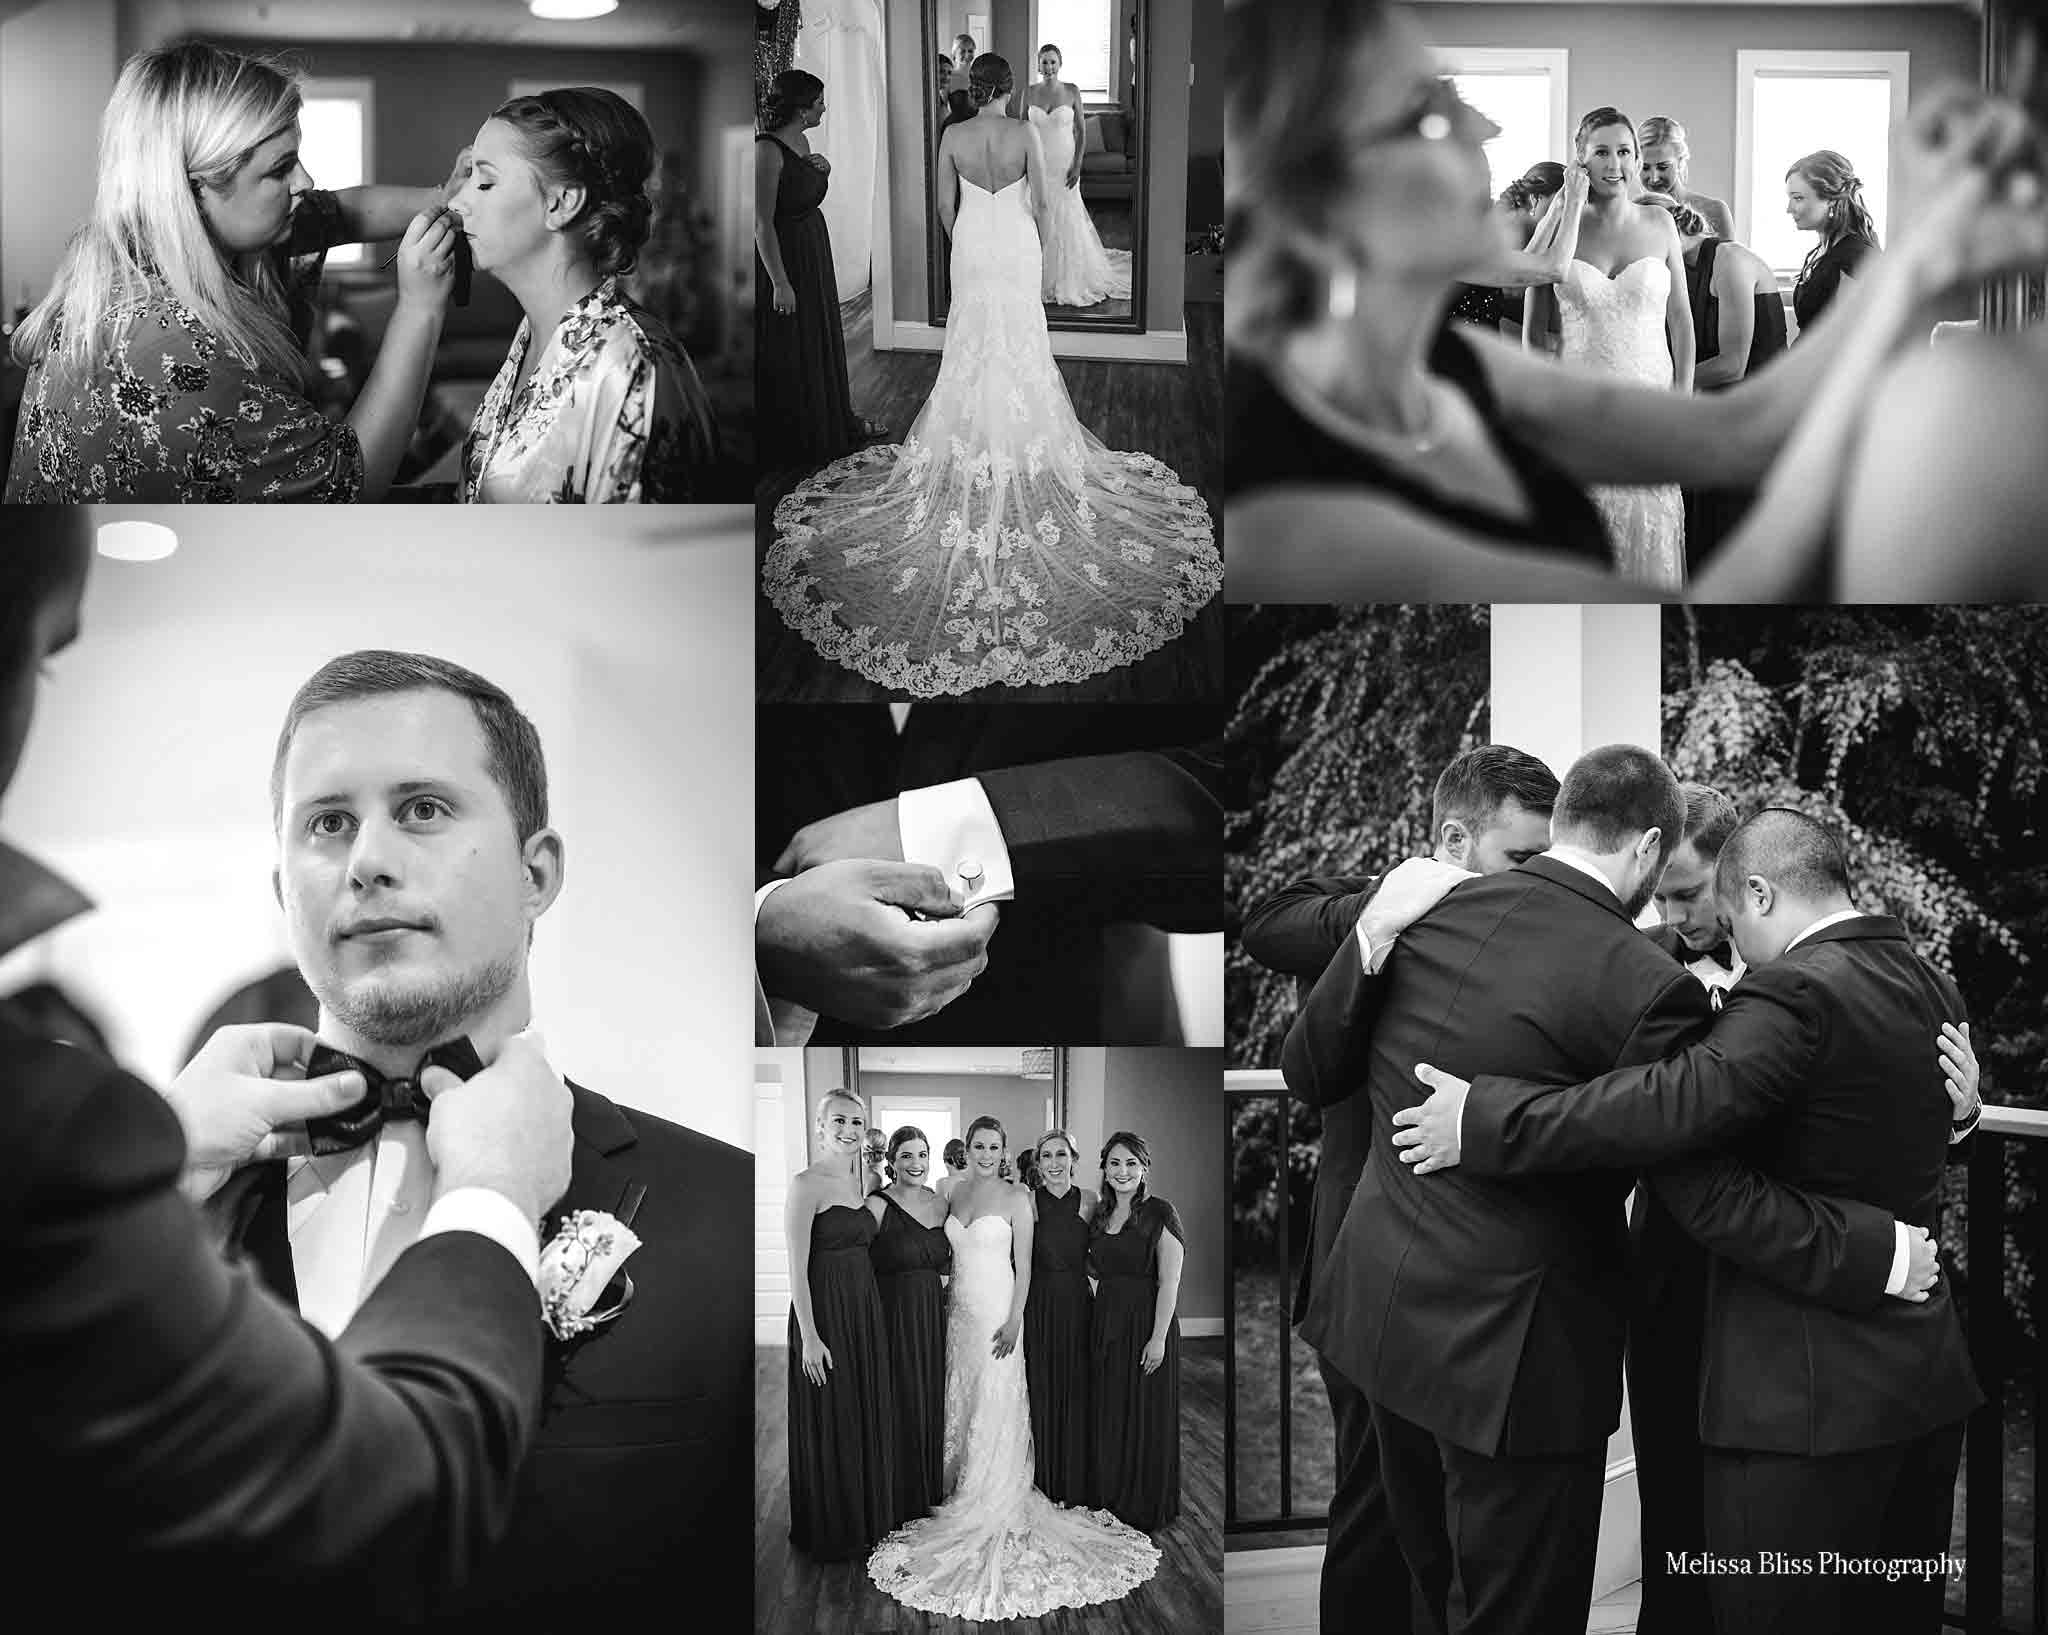 norfolk-wedding-photographer-professional-wedding-photographer-virginia-beach-womans-club-of-portsmouth-wedding-photography.jpg